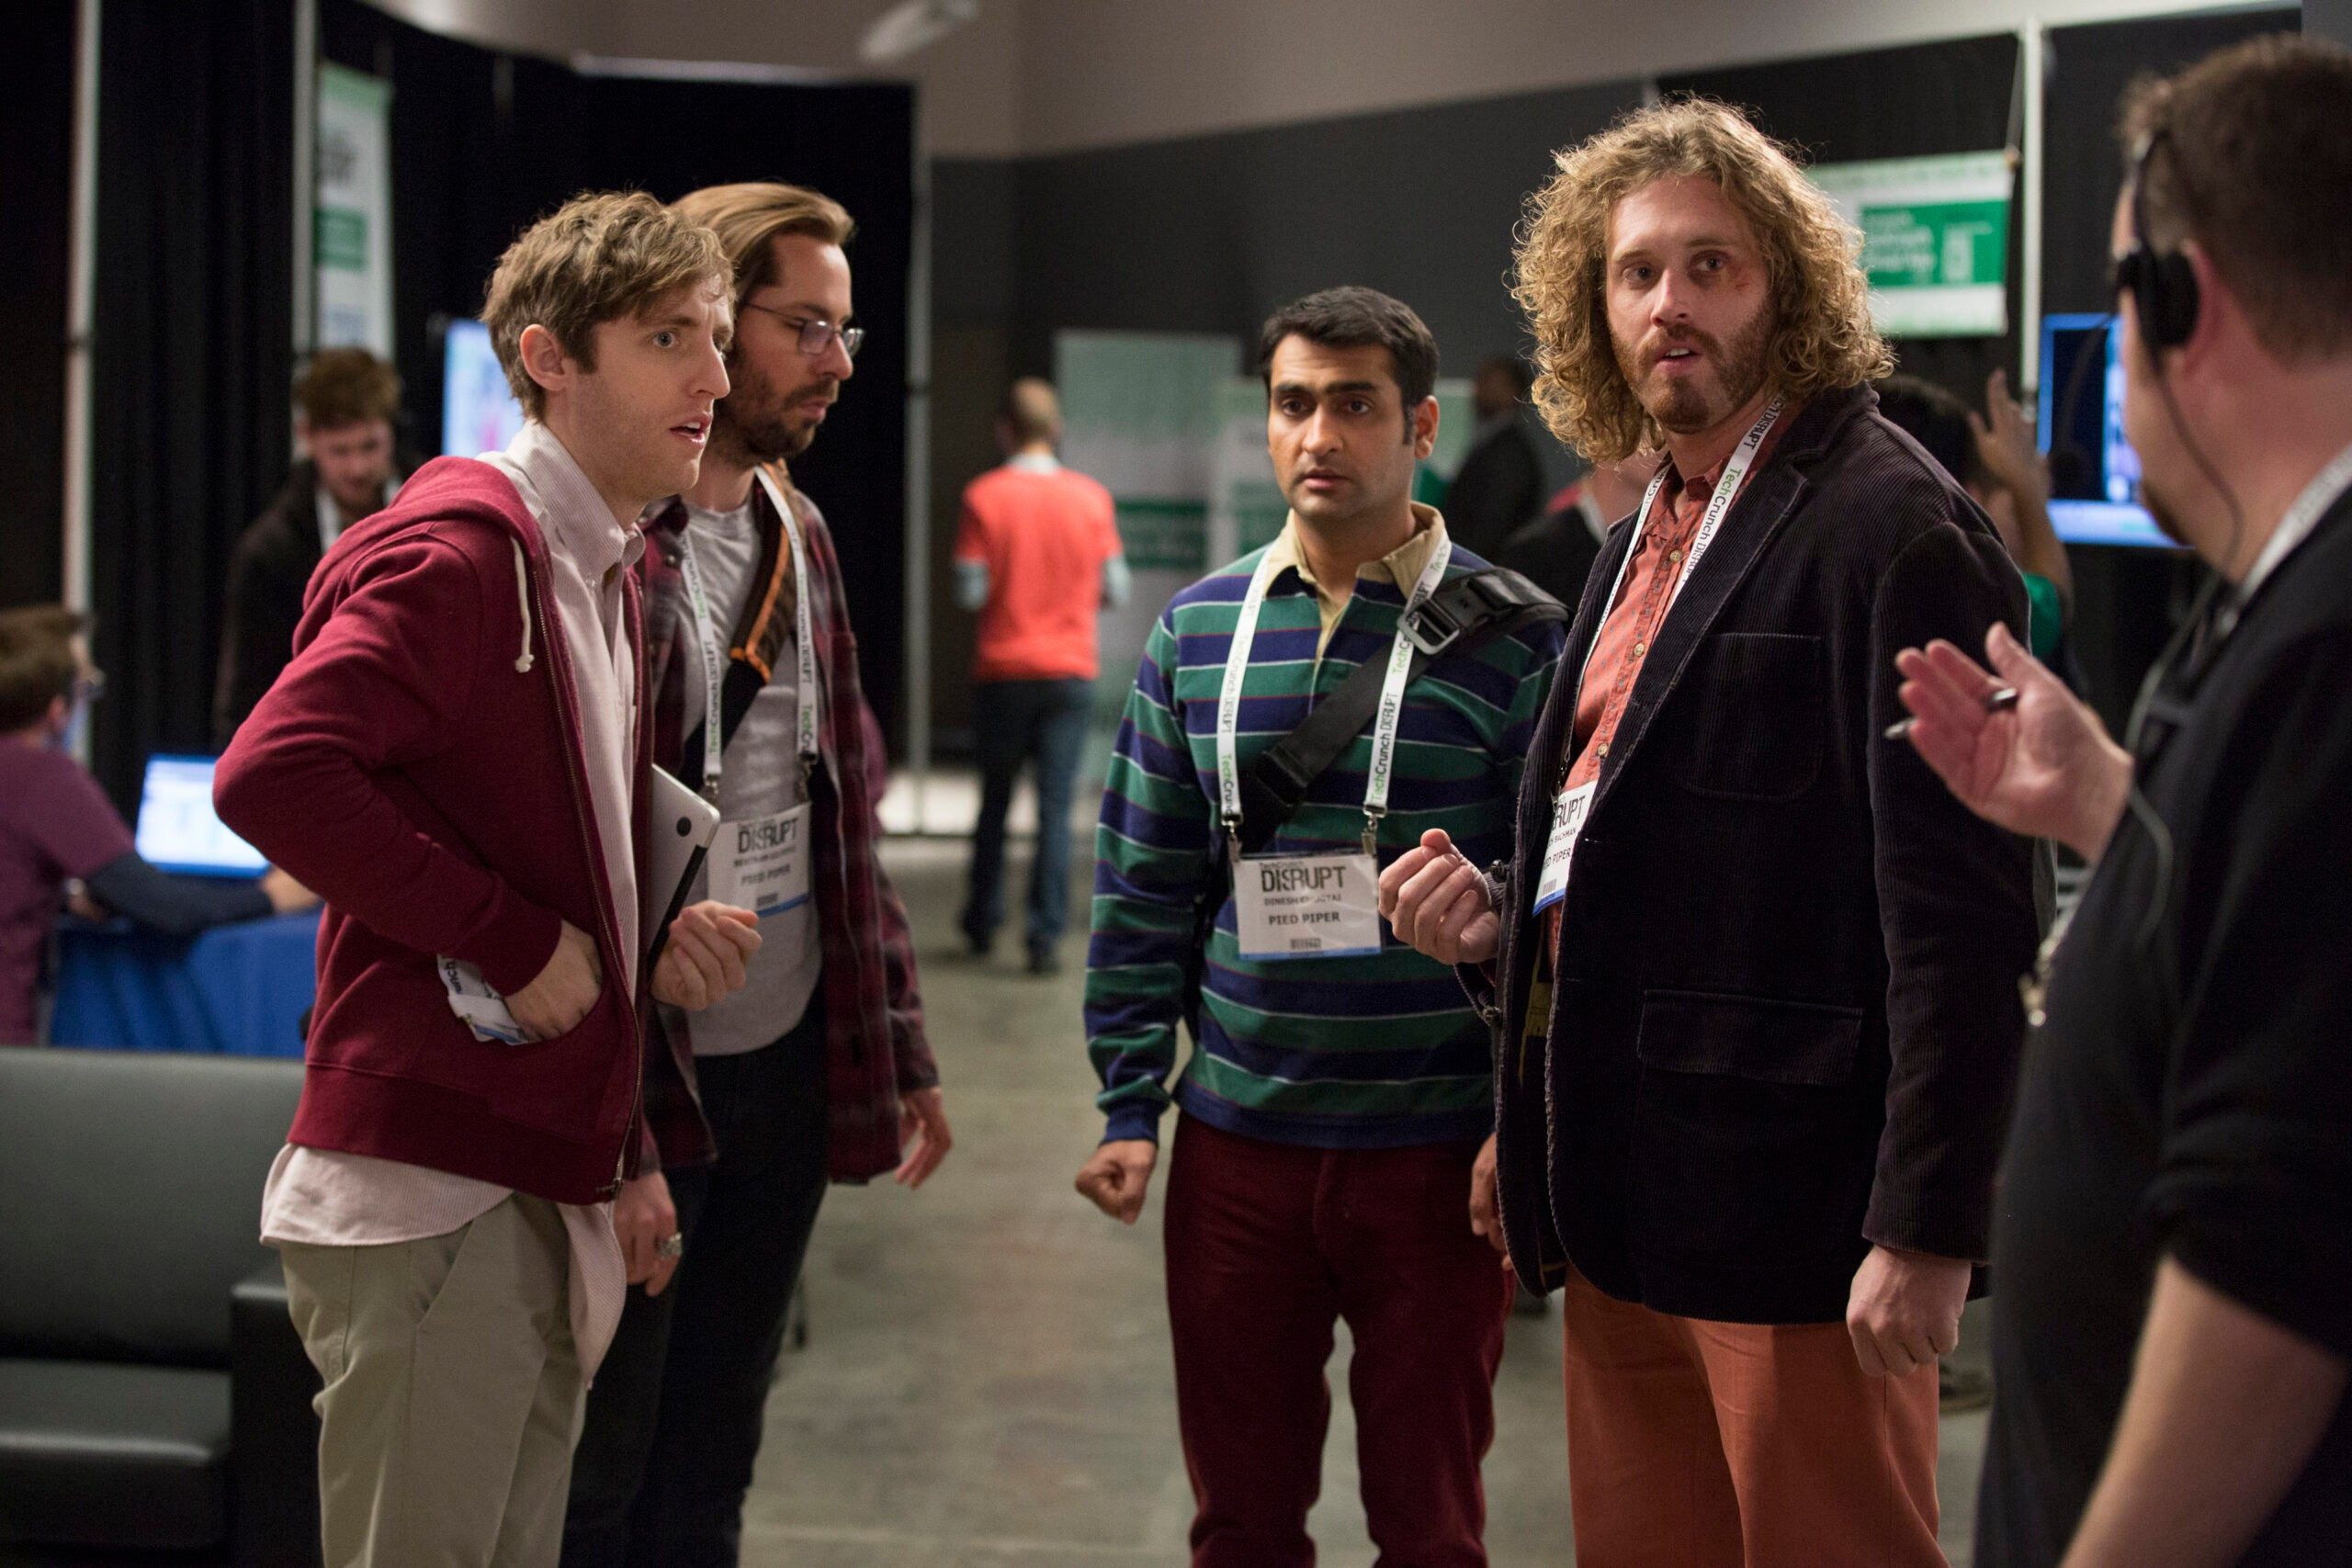 Behind the scenes Silicon Valley's showrunners deeply investigate programmer's annoyances.